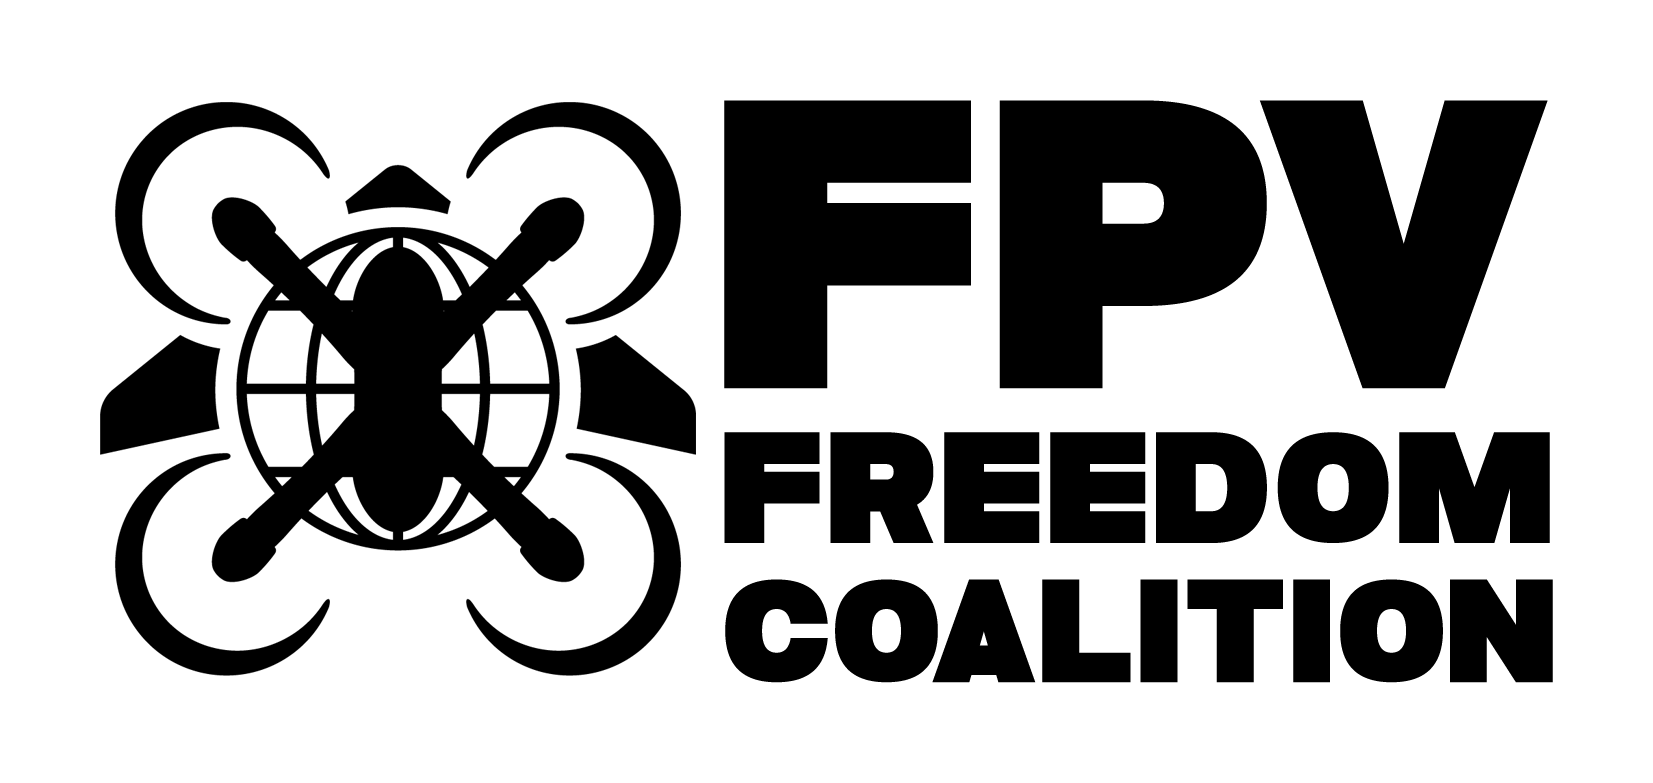 FPVFC - Primary Logo Black on White.png